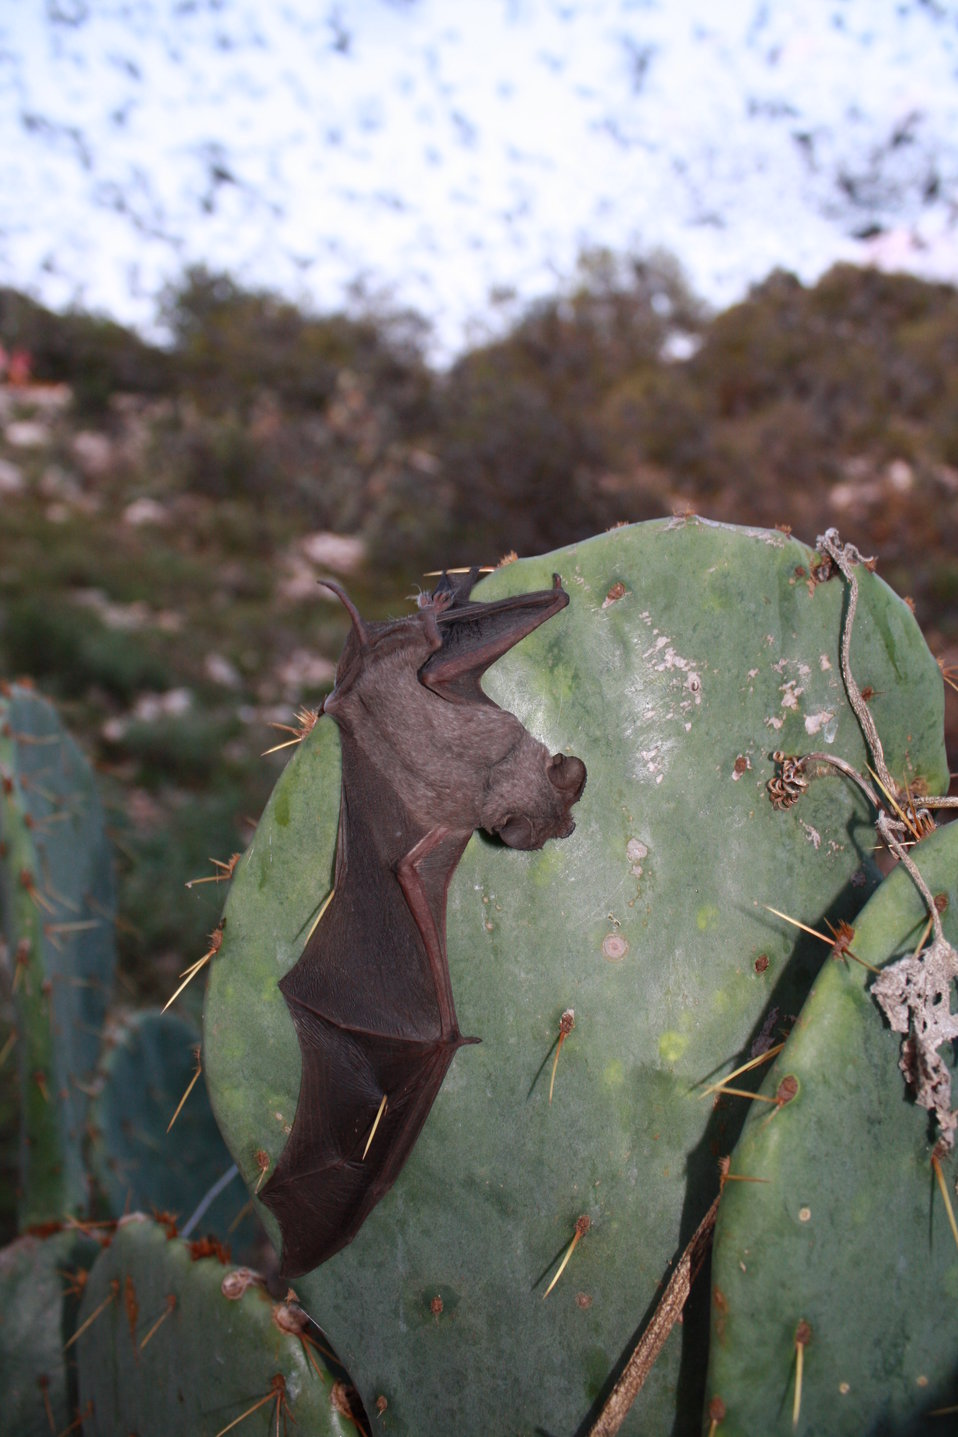 Mexican free-tailed bat on cactus